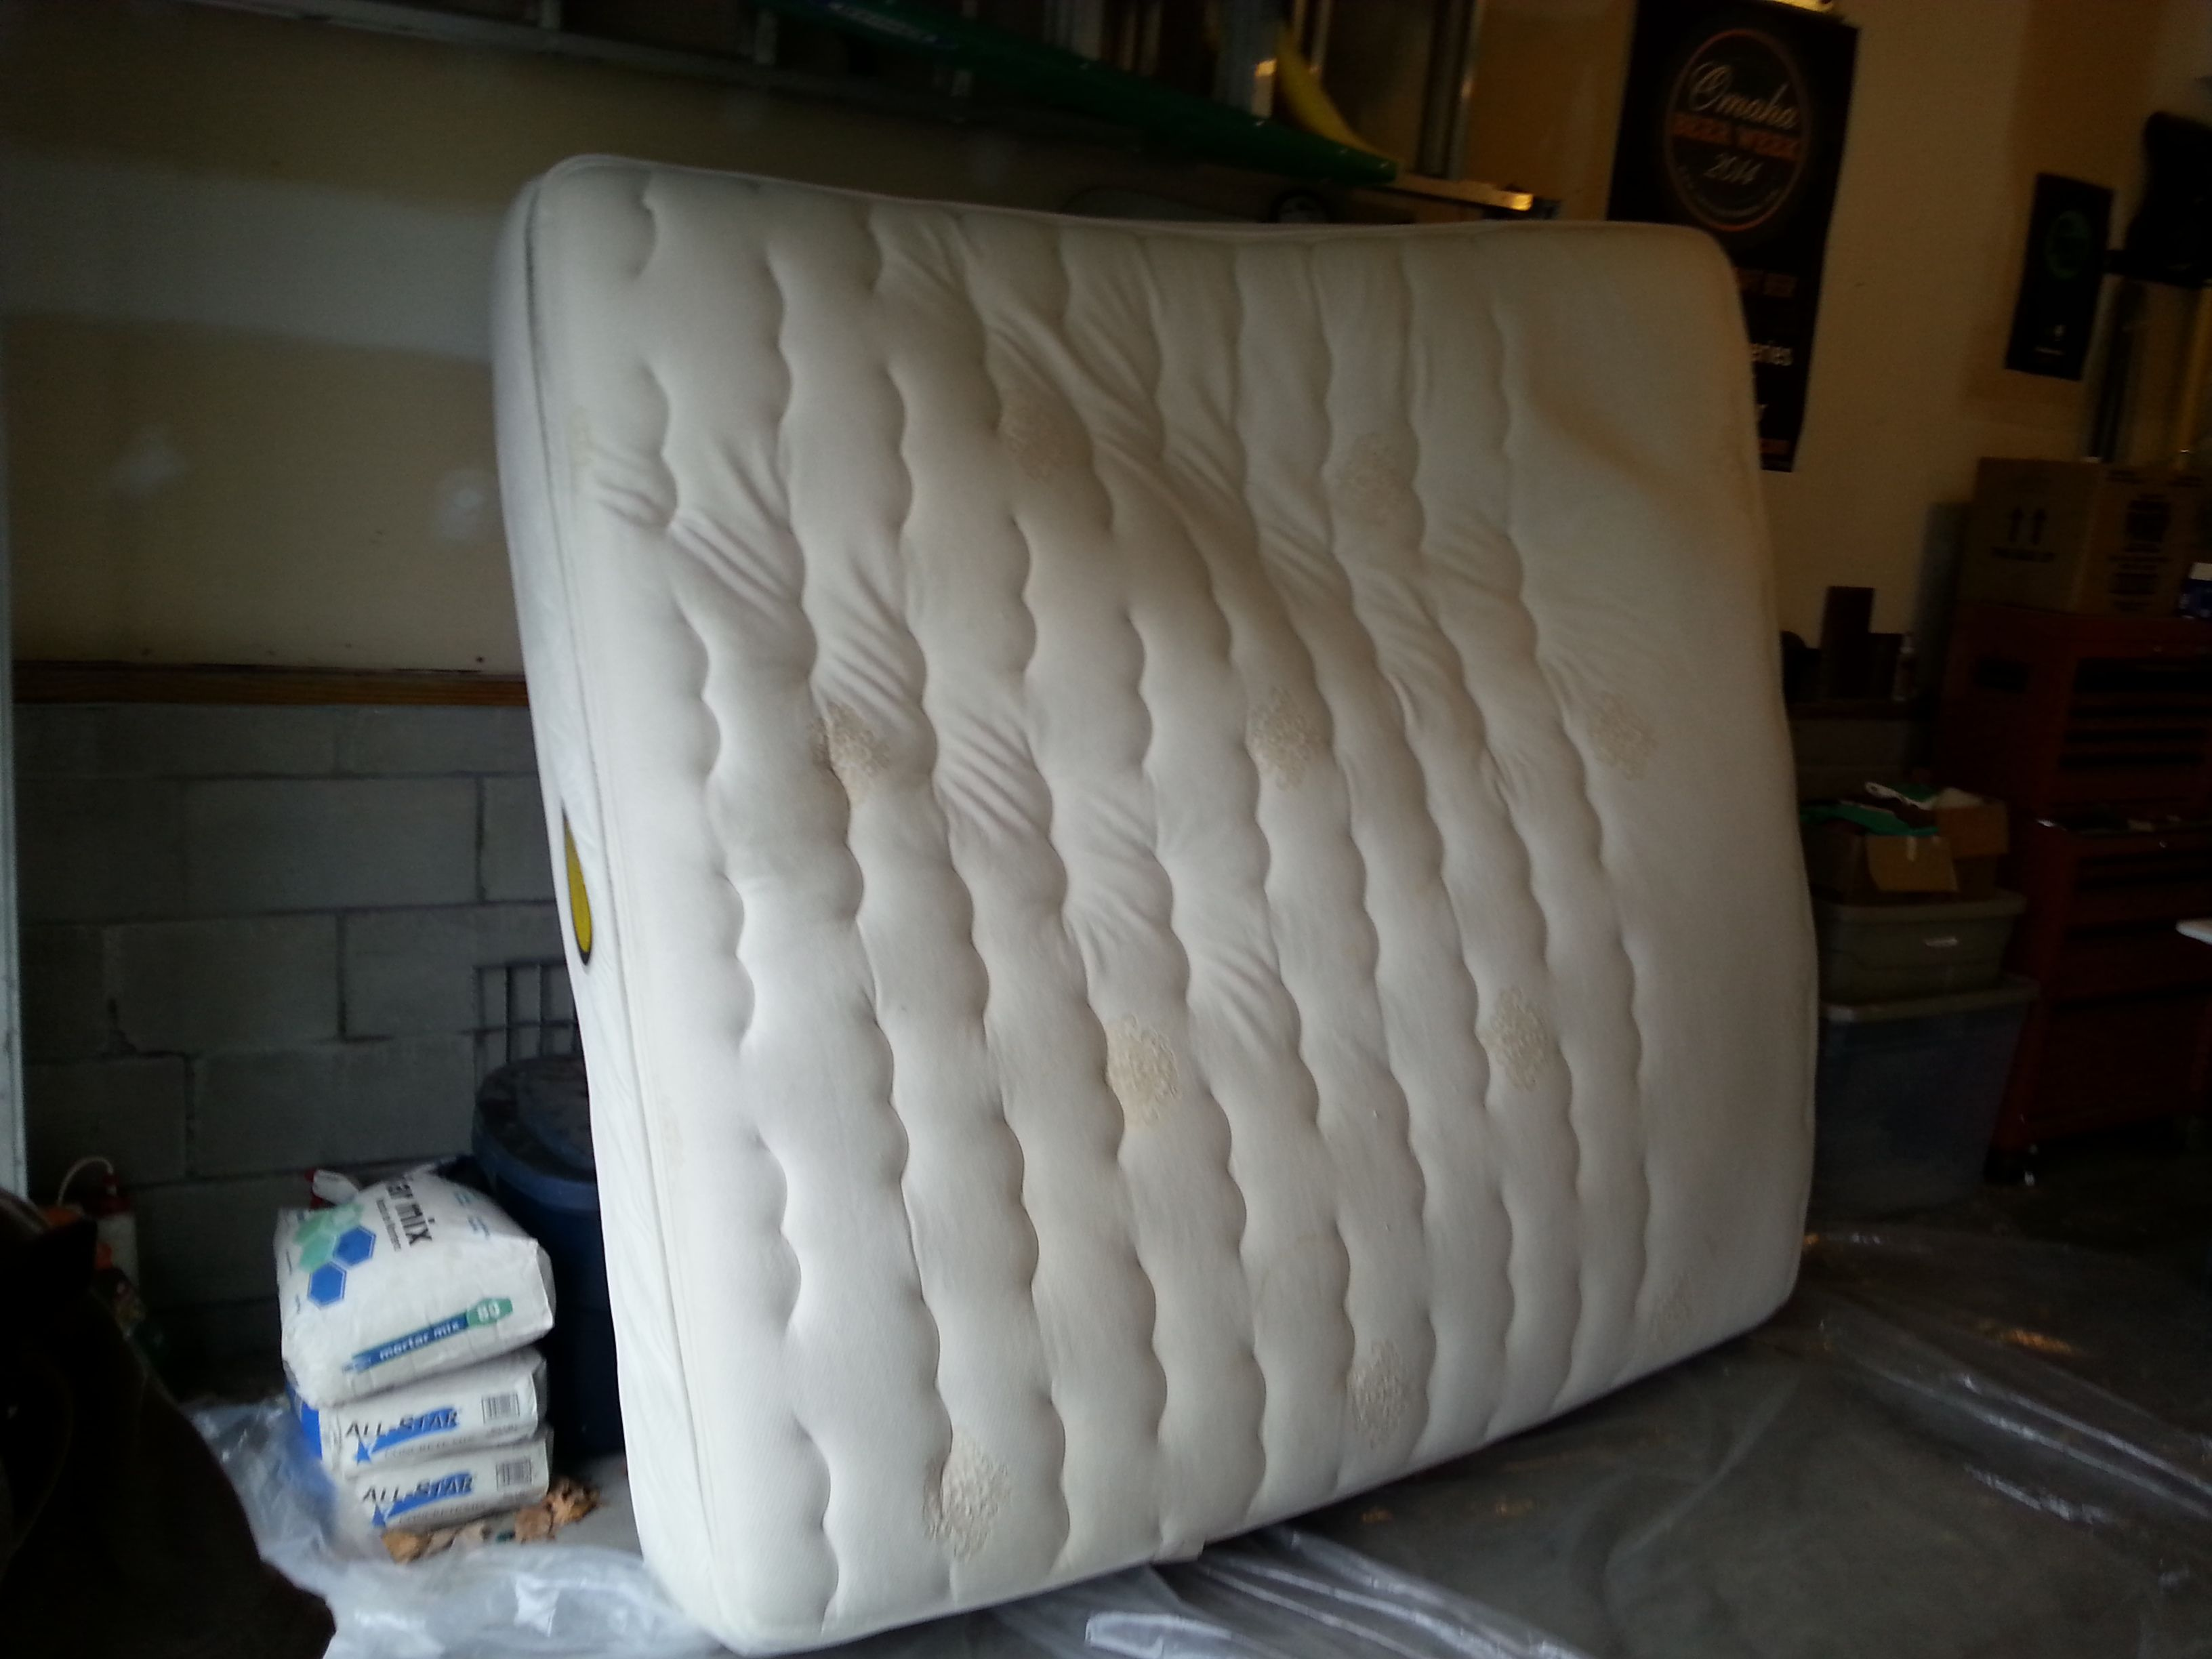 mattress removal service 402 810 6319 cost 40 excel moving